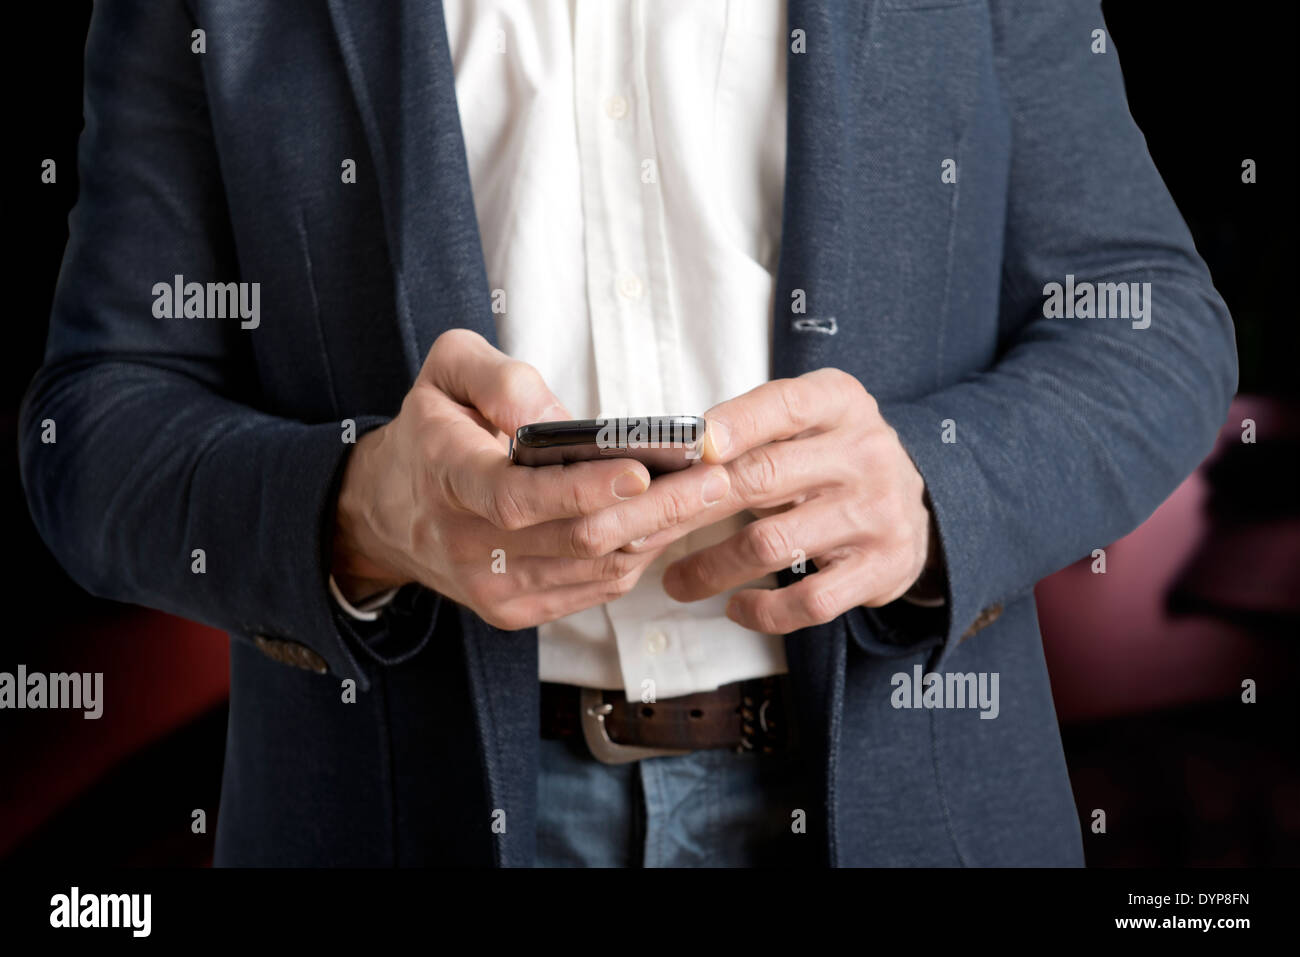 Casual businessman sending a text message on a mobile phone in a dark background - Stock Image